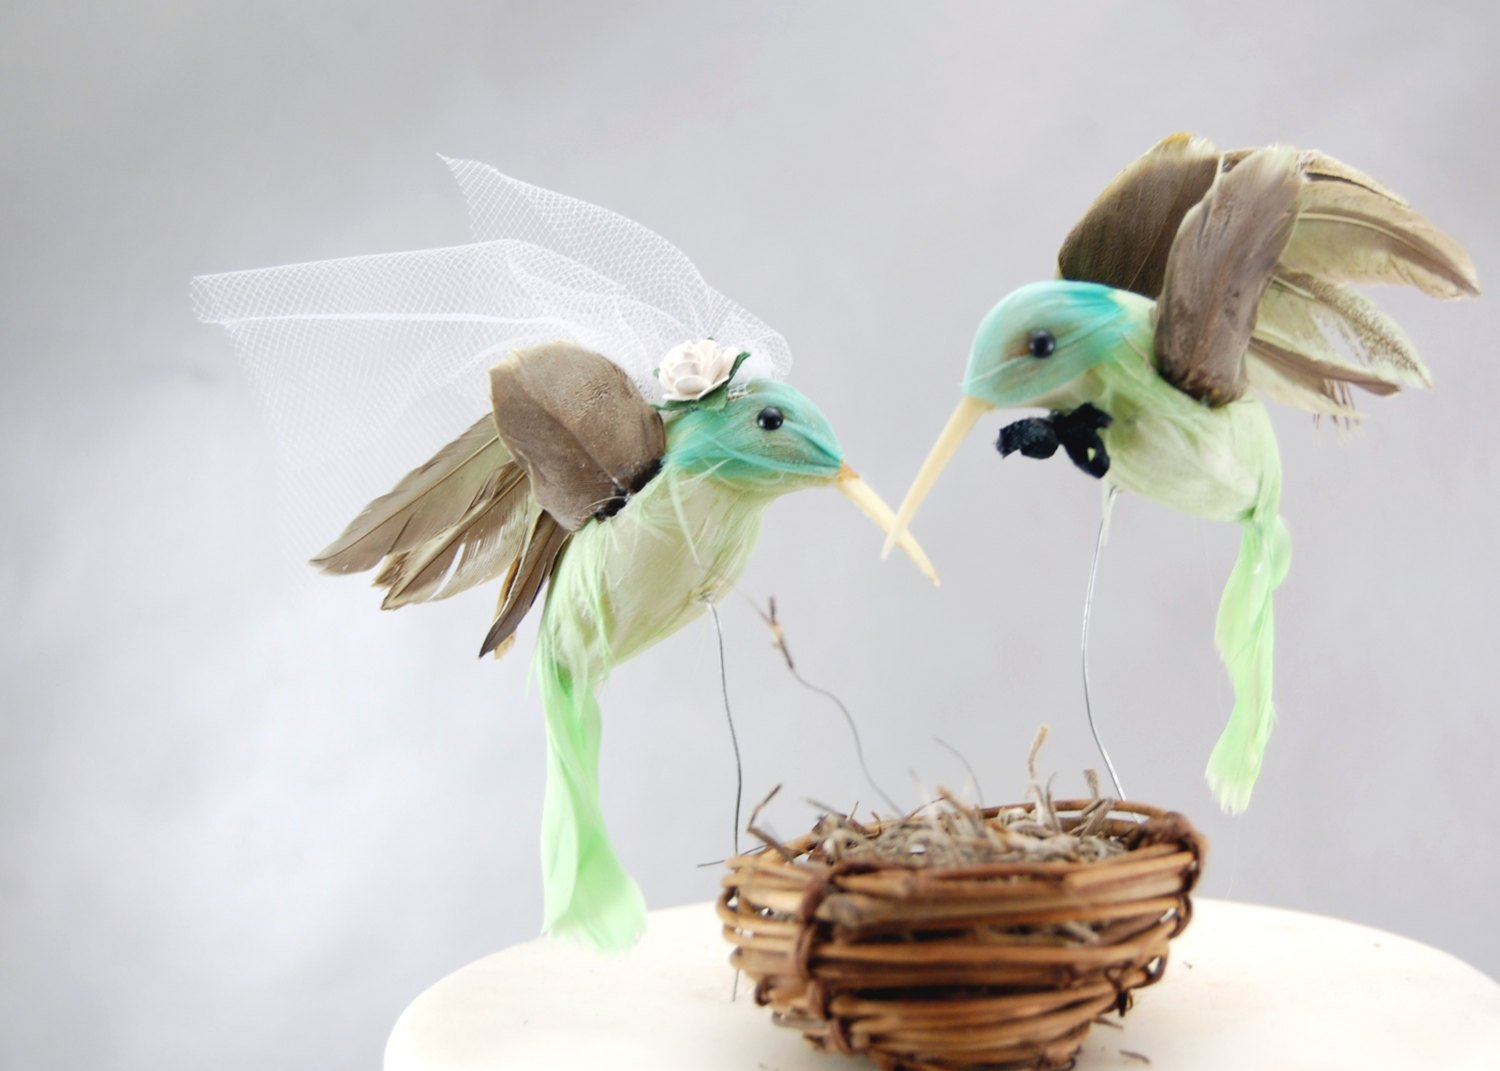 Hummingbird Cake Topper: Humming Bird''Bride and Groom'' Wedding Cake Topper in Mint Green by Becky Kazana